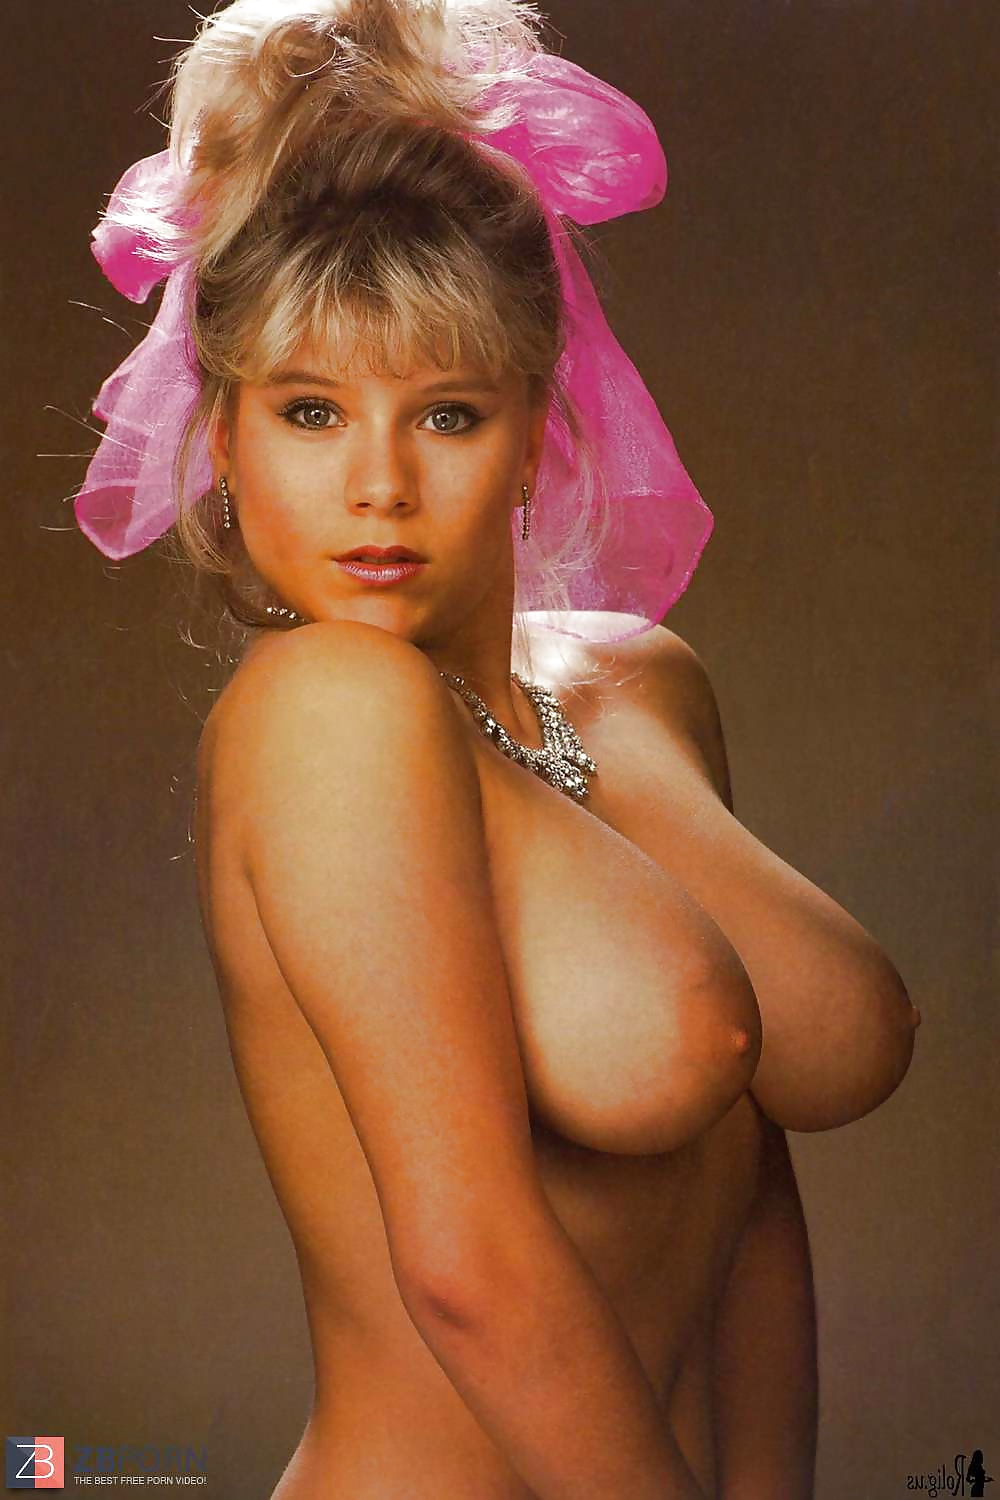 Samantha fox nude pictures rating-44006